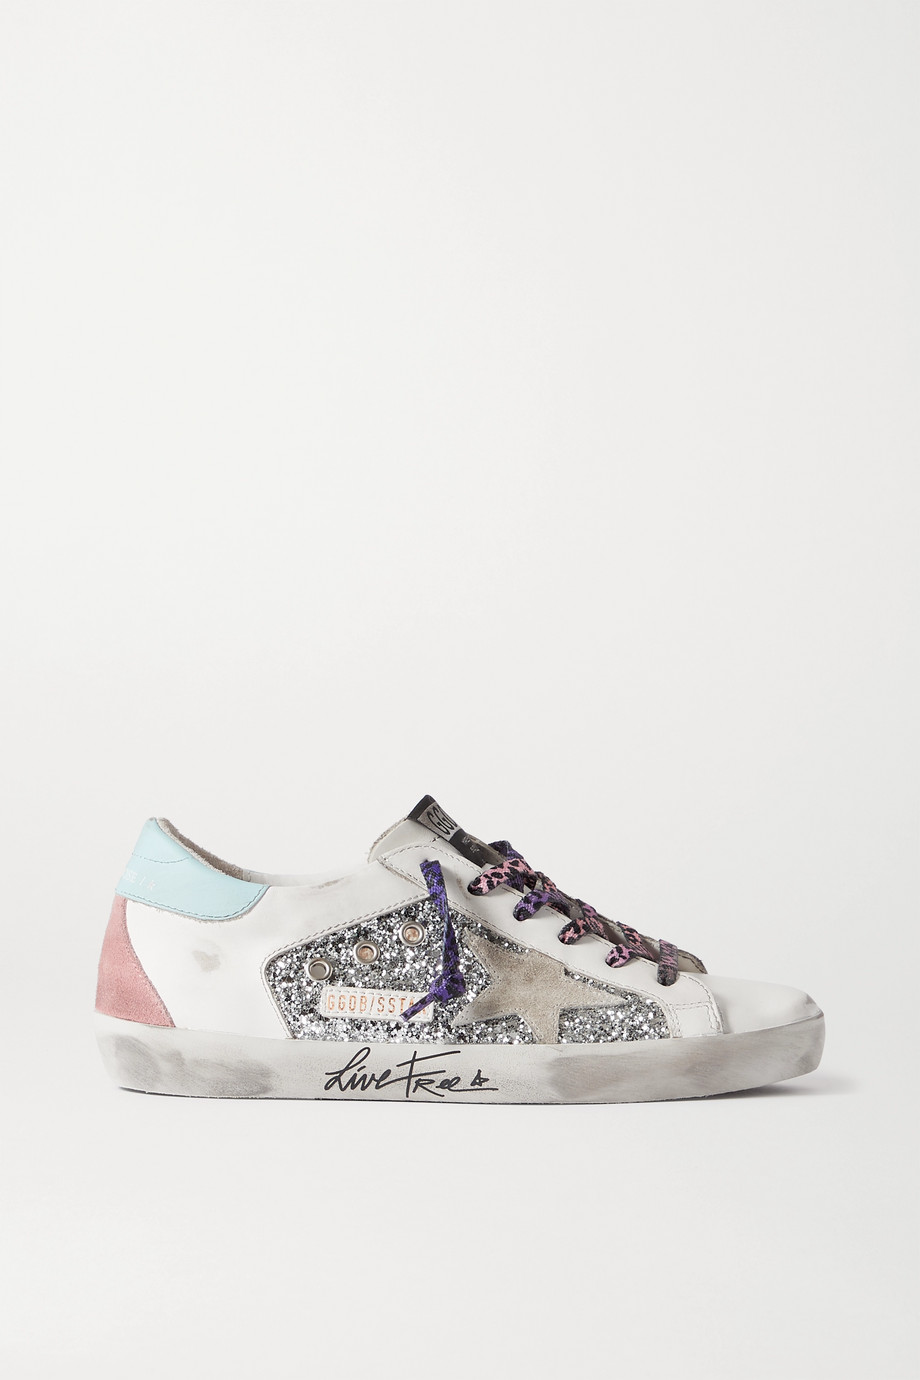 Golden Goose Superstar distressed glittered leather and suede sneakers